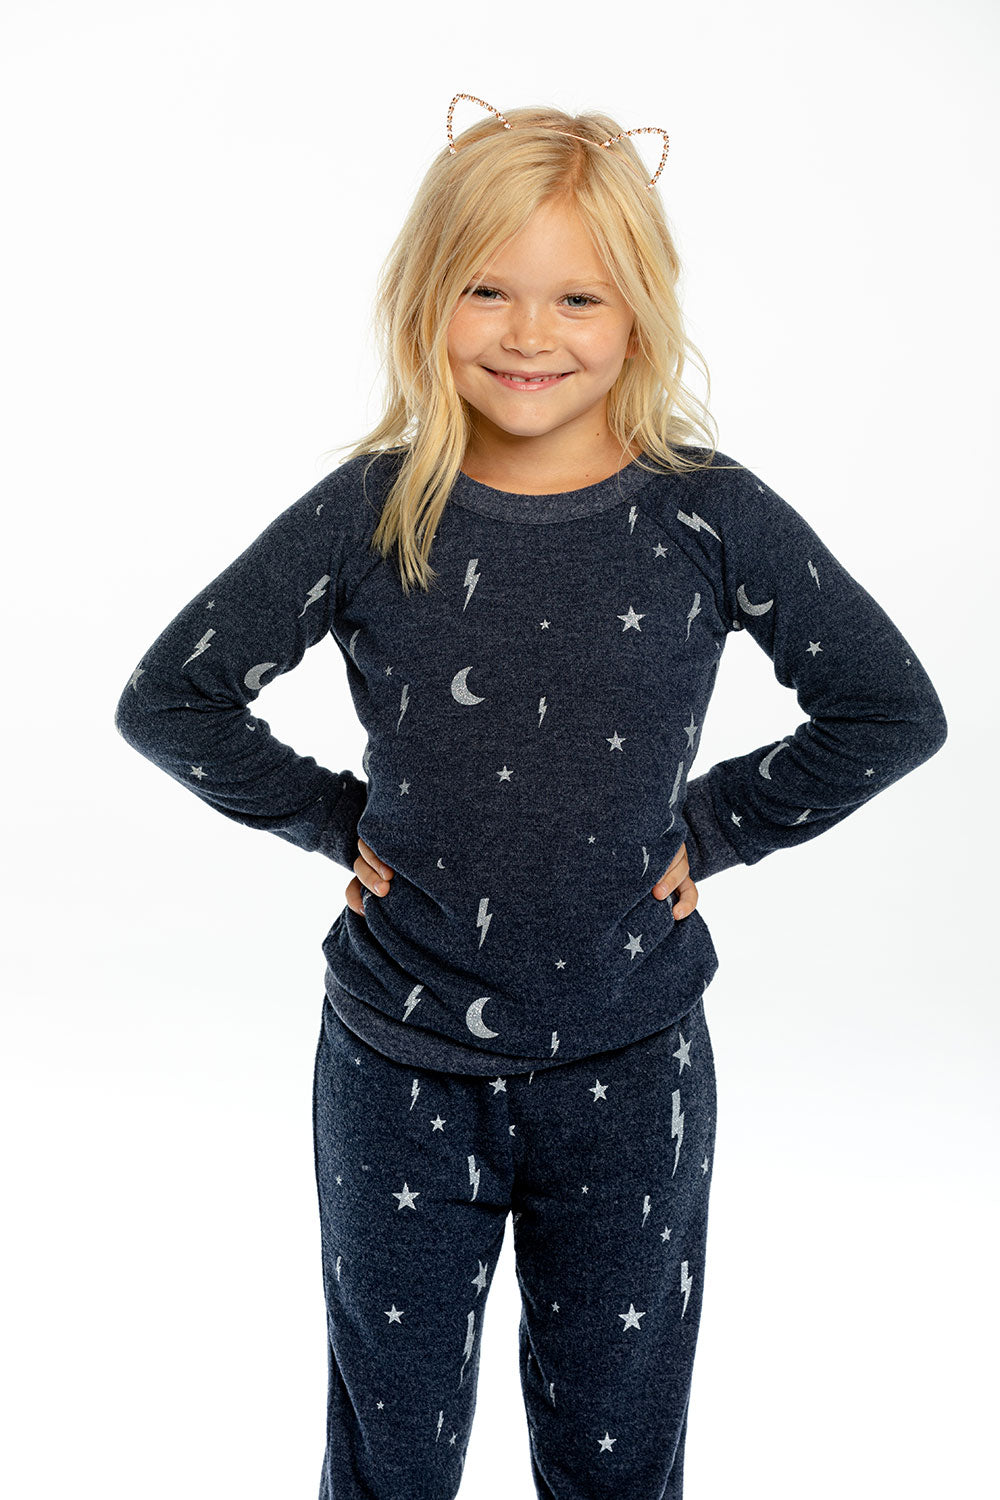 Glitter Stars And Bolts GIRLS chaserbrand4.myshopify.com